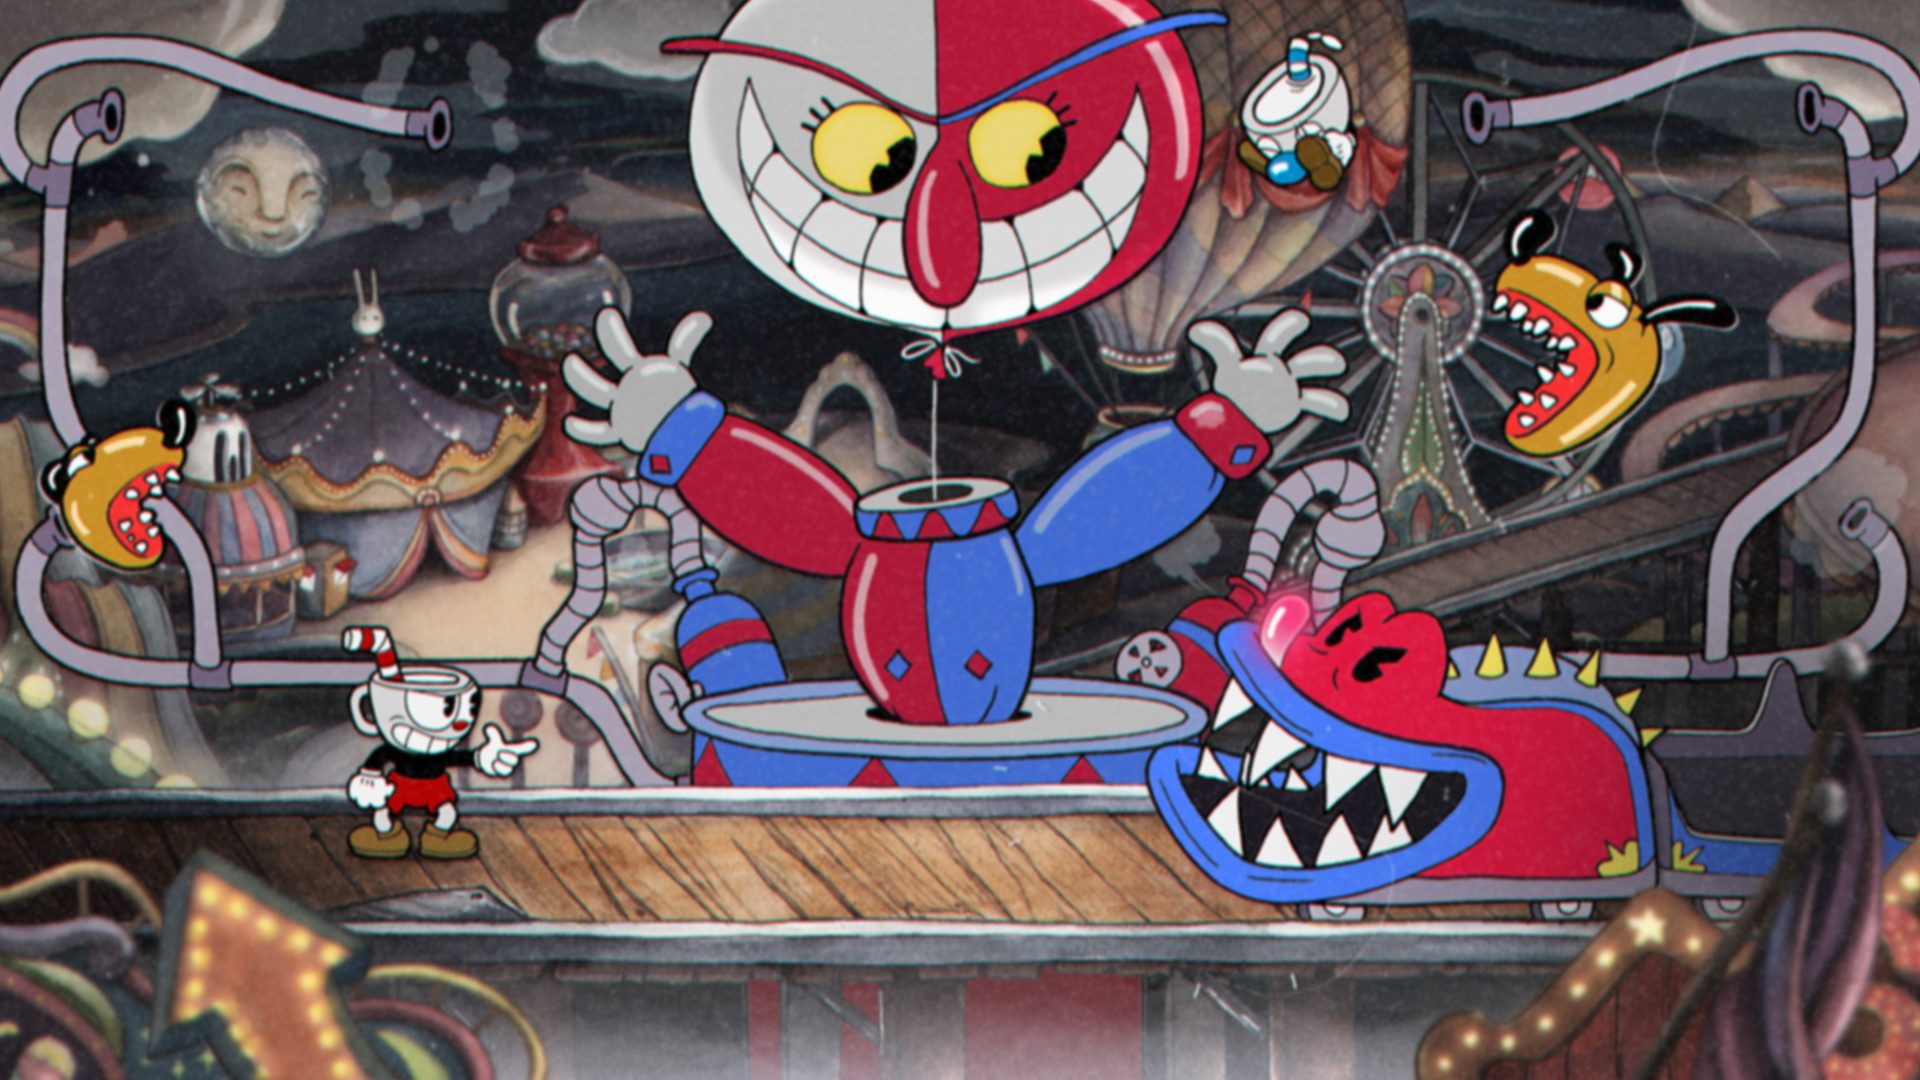 Find the best laptop for Cuphead